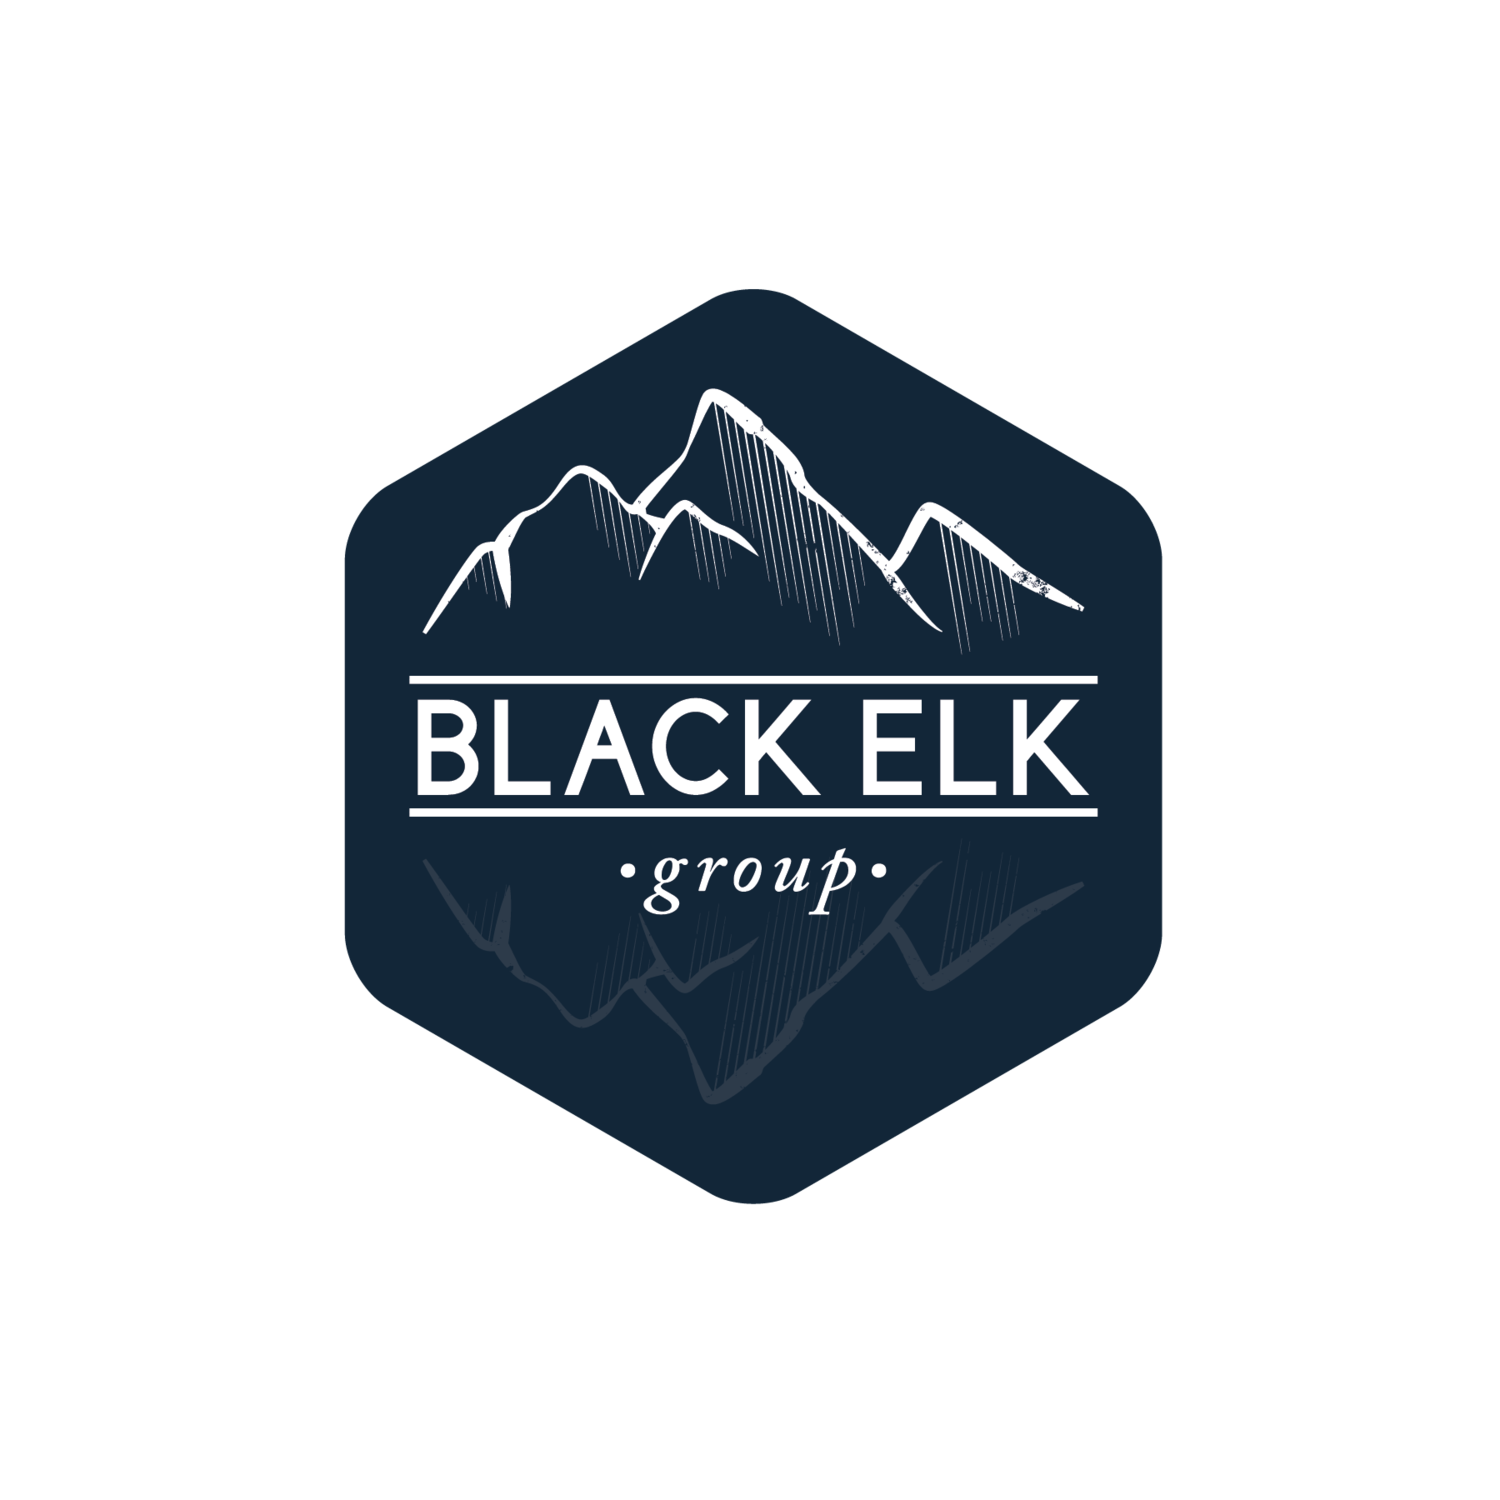 Black Elk Group